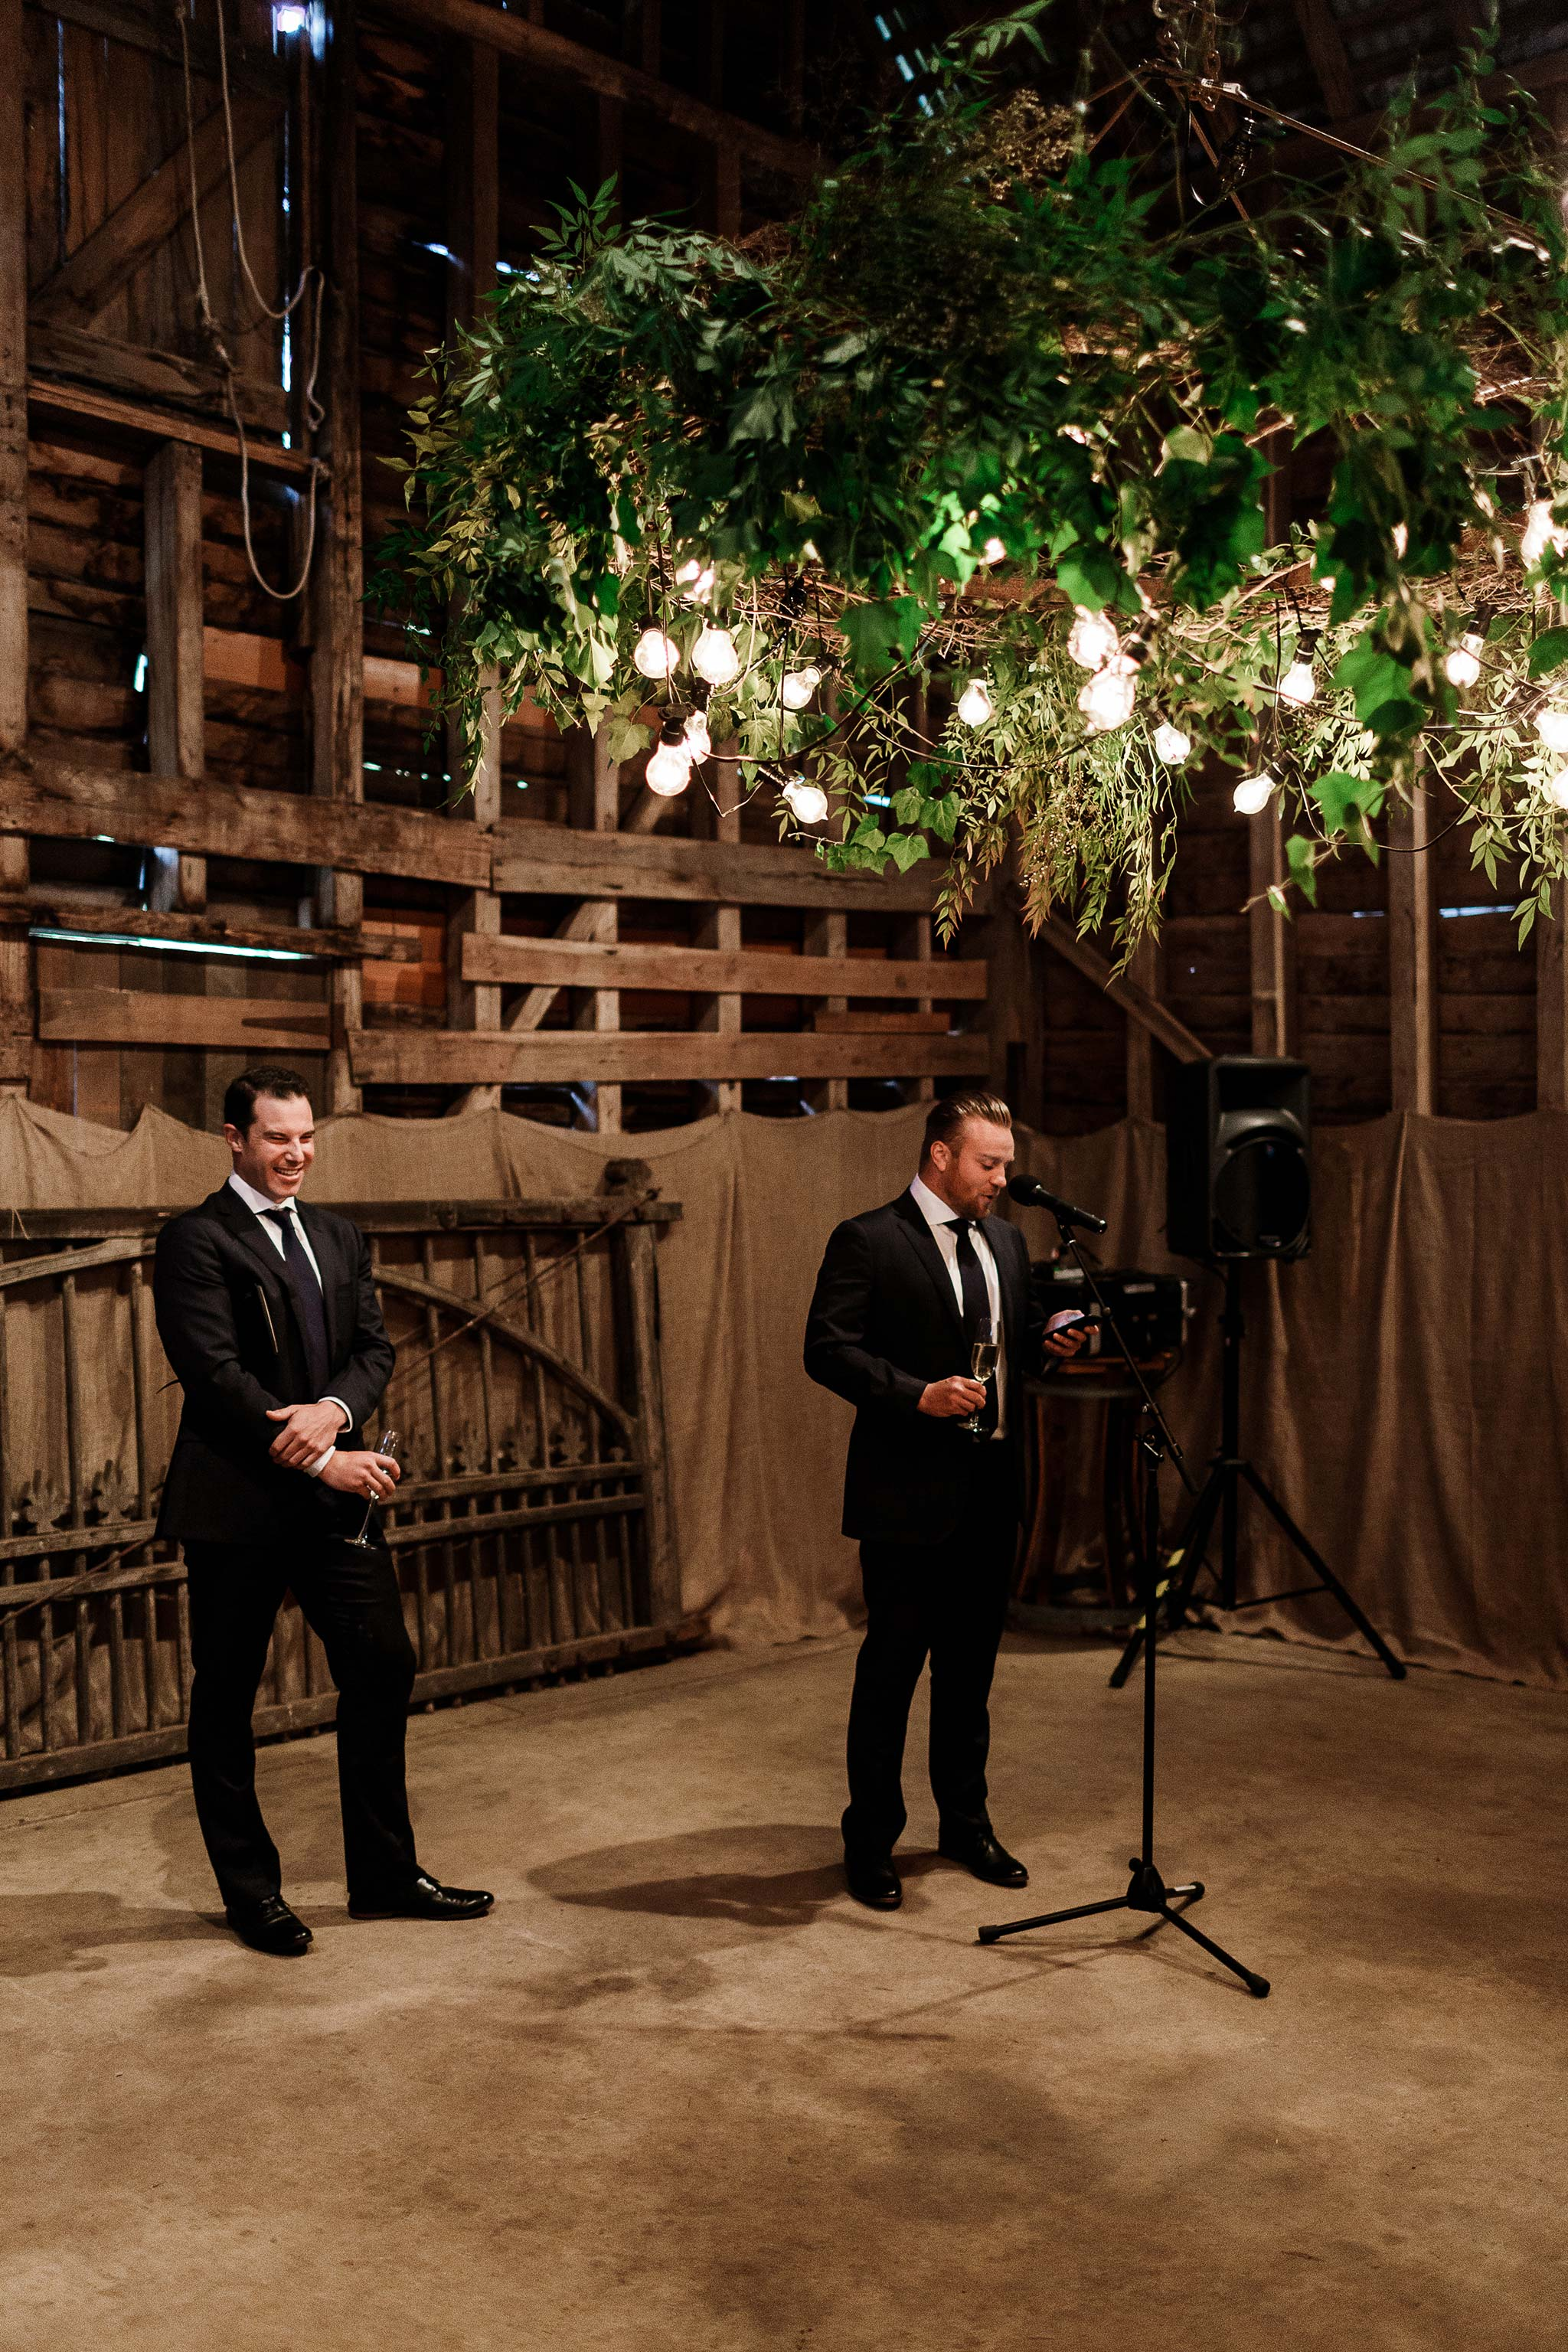 Launceston-Brickendon-barn-Wedding-Photographer-reception-groomsmen-speech